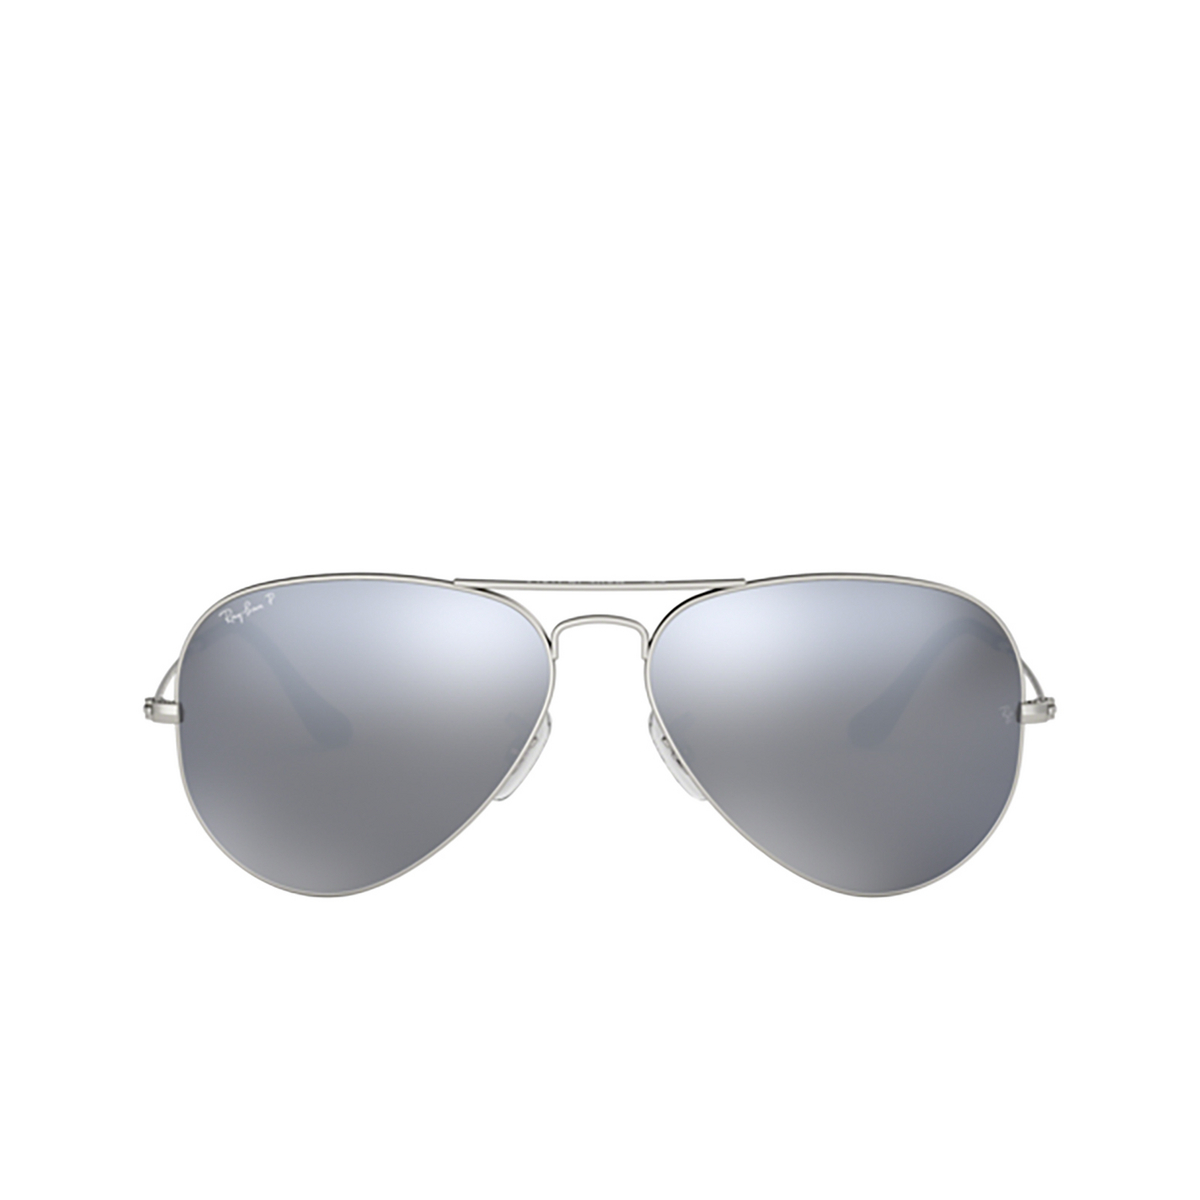 Ray-Ban® Aviator Sunglasses: Aviator Large Metal RB3025 color Matte Silver 019/W3 - front view.